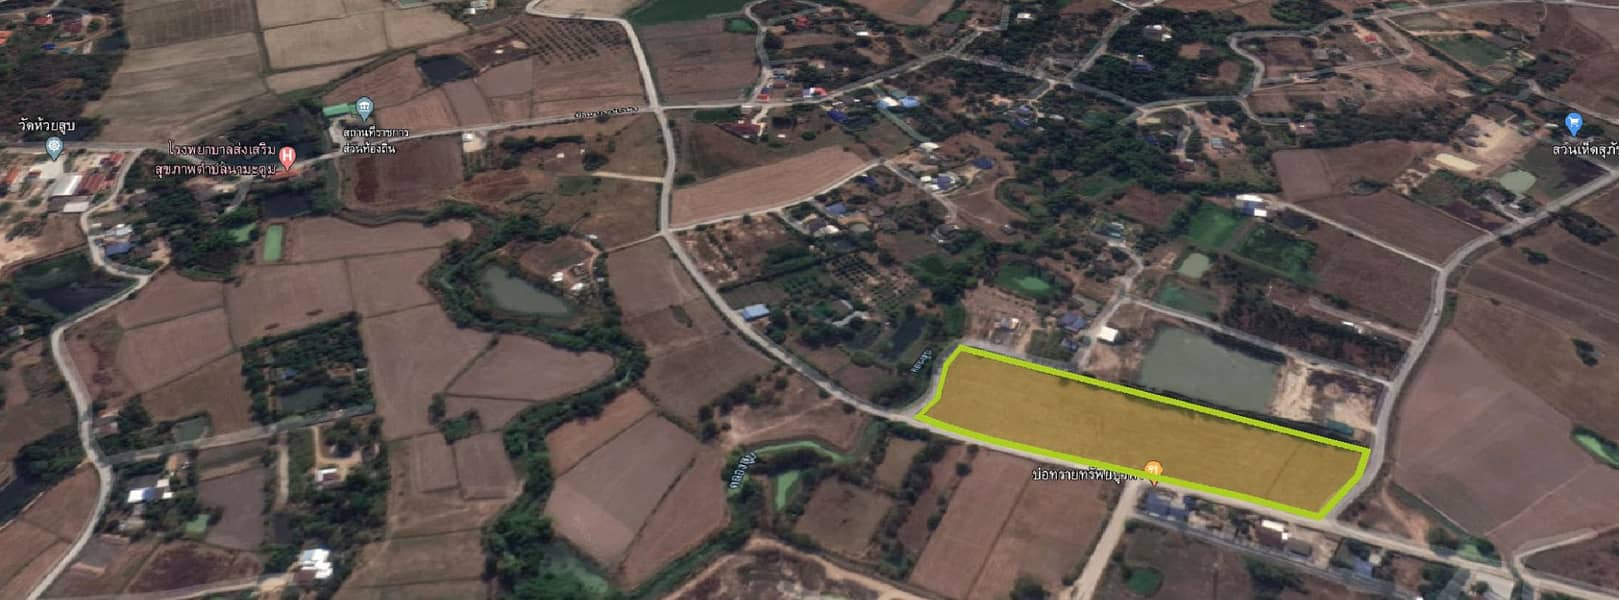 Land for sale 14 rai next to the road.